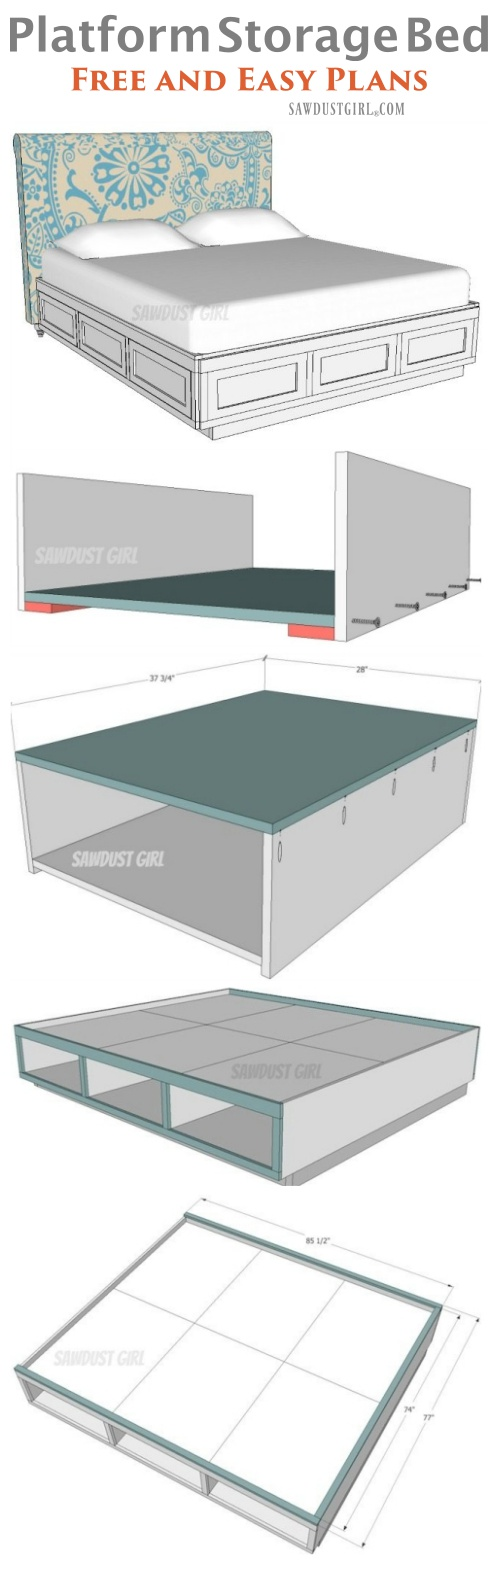 Build a platform storage bed with free plans!